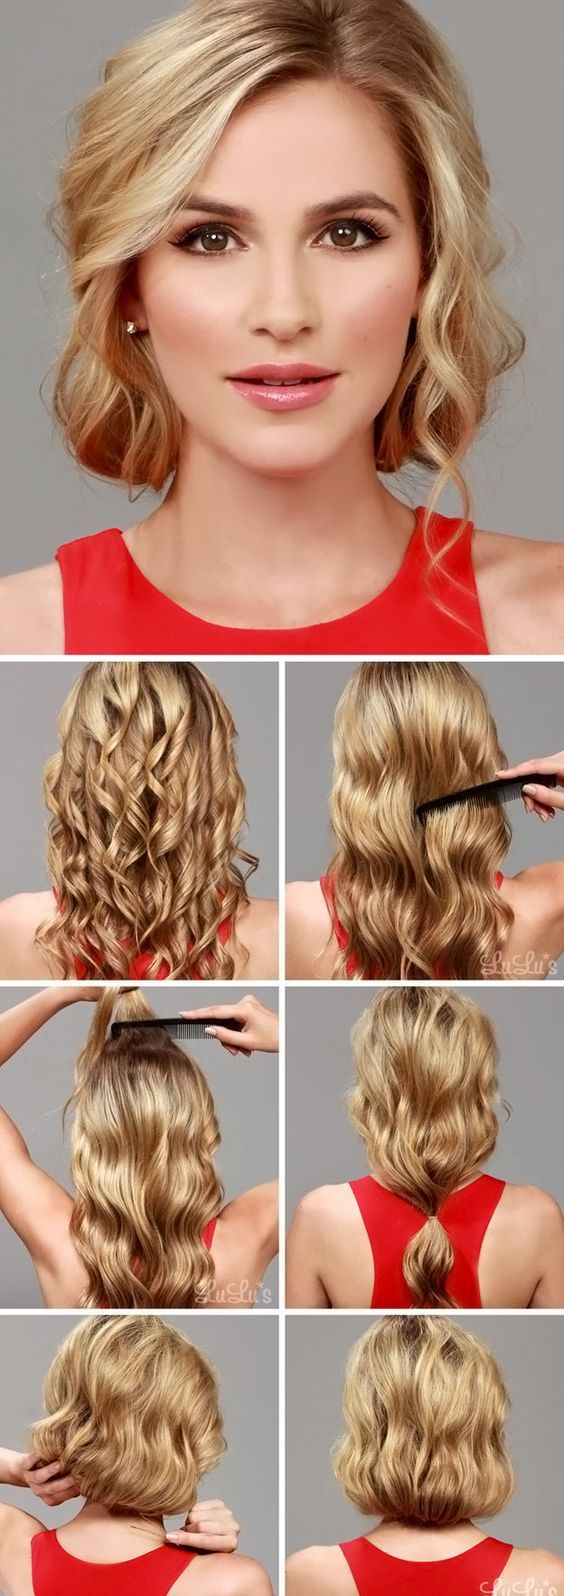 104 best hair images on pinterest | hairstyles, braids and hair ideas